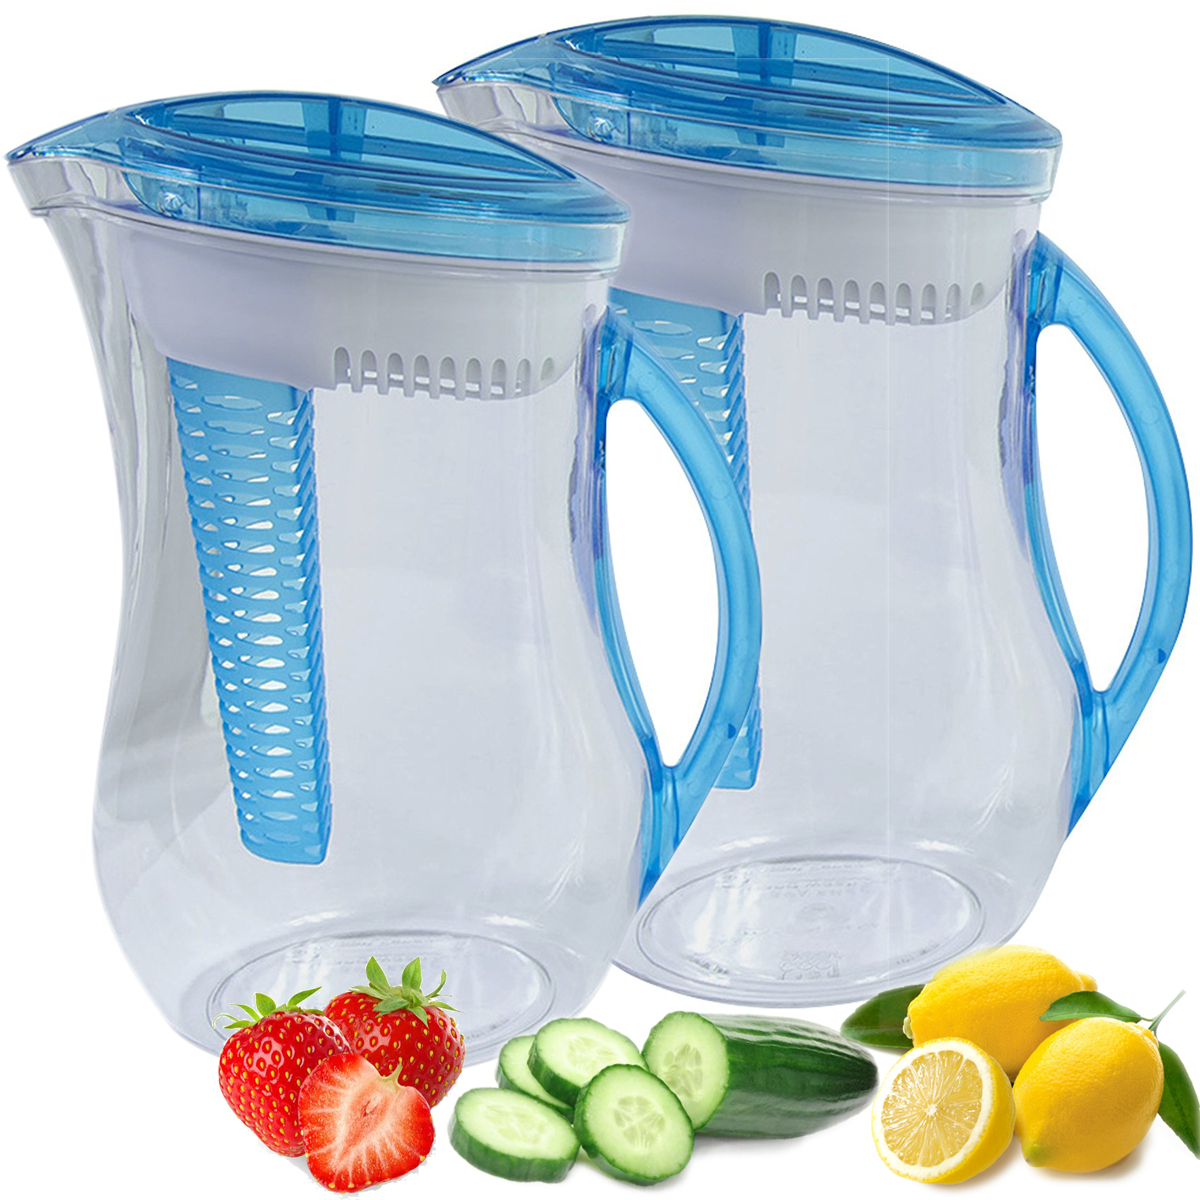 Cool Gear 2 Pack 10 Cup Infuser Filter Pitcher Natural Water Filtration System Plus Fruit Tea Flavor Infusion Reusable Dispenser